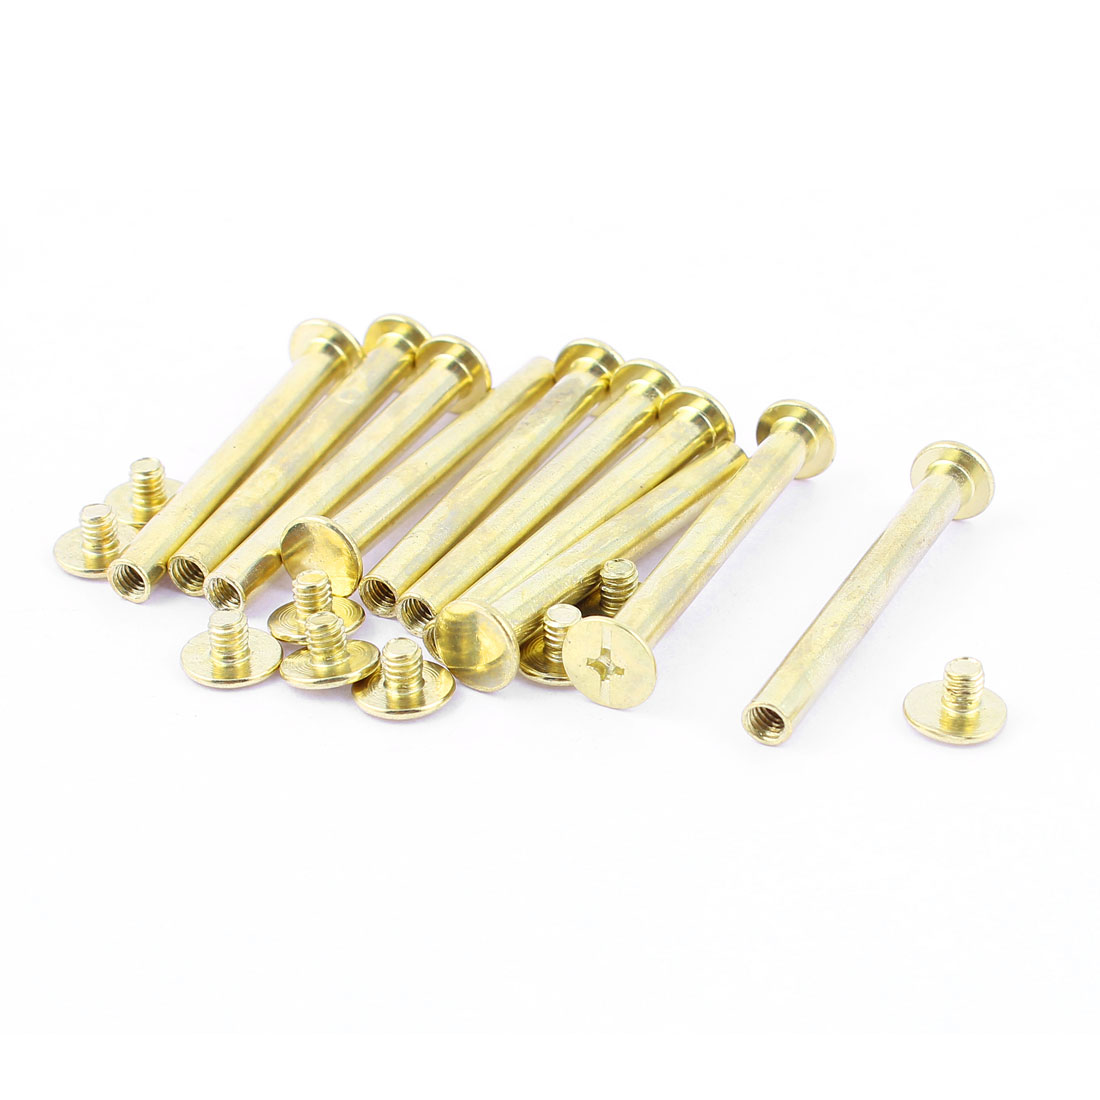 10pcs 5mmx45mm Brass Plated Binding Chicago Screw Post for Album Scrapbook